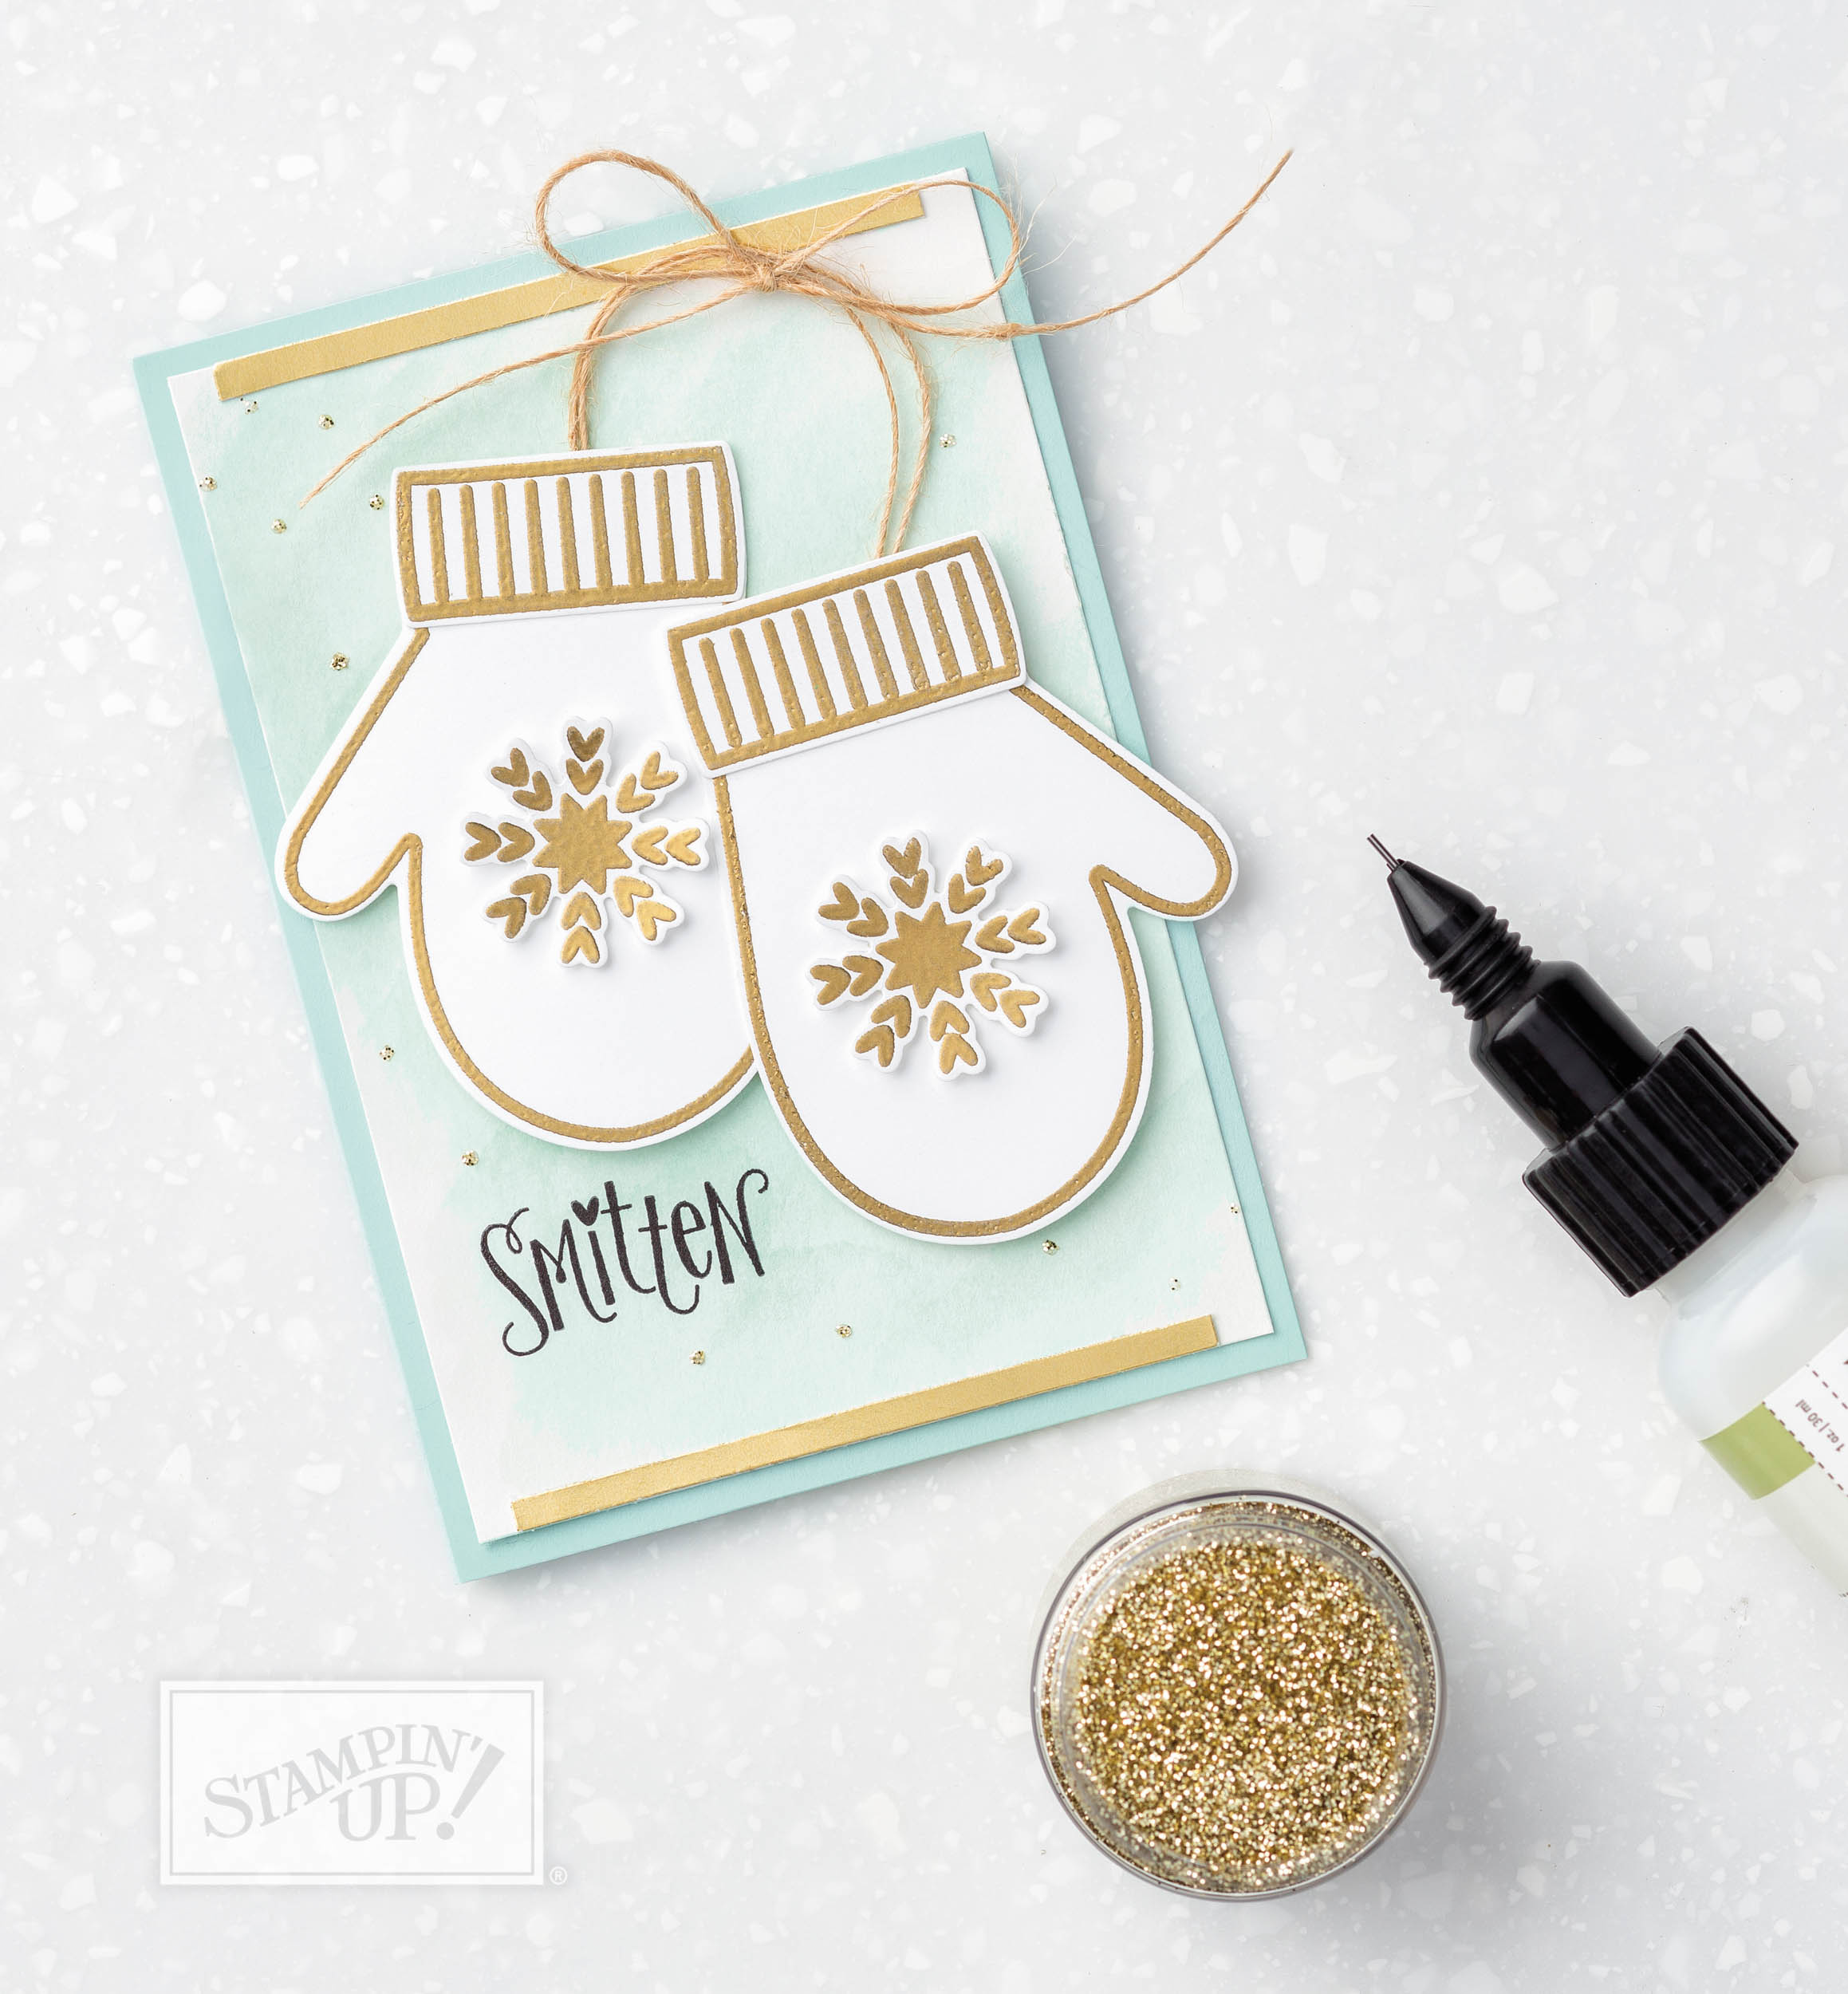 Smitten Mittens with Wendy Lee, Stampin Up, Smitten Mittens stamp set, many mittens framelits, big shot, hand made, winter cards and gifts, stamping, #creativeleeyours, creatively yours